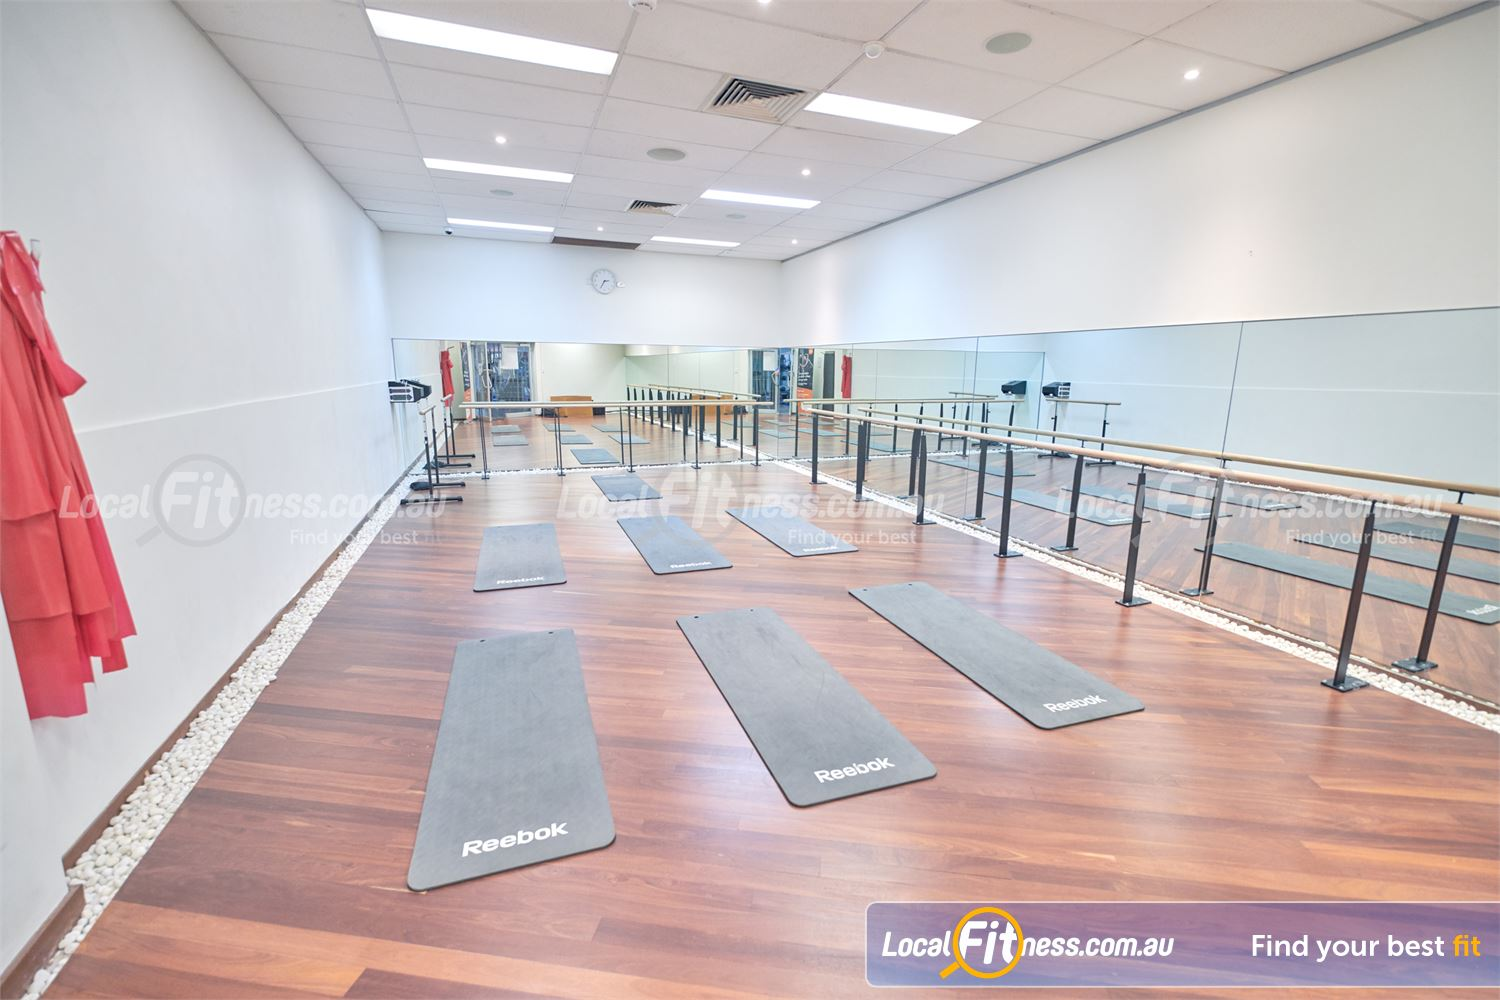 Goodlife Health Clubs Knox City Near Knoxfield Dedicated mind-body studio for our Wantirna South Yoga, Barre and Pilates classes.